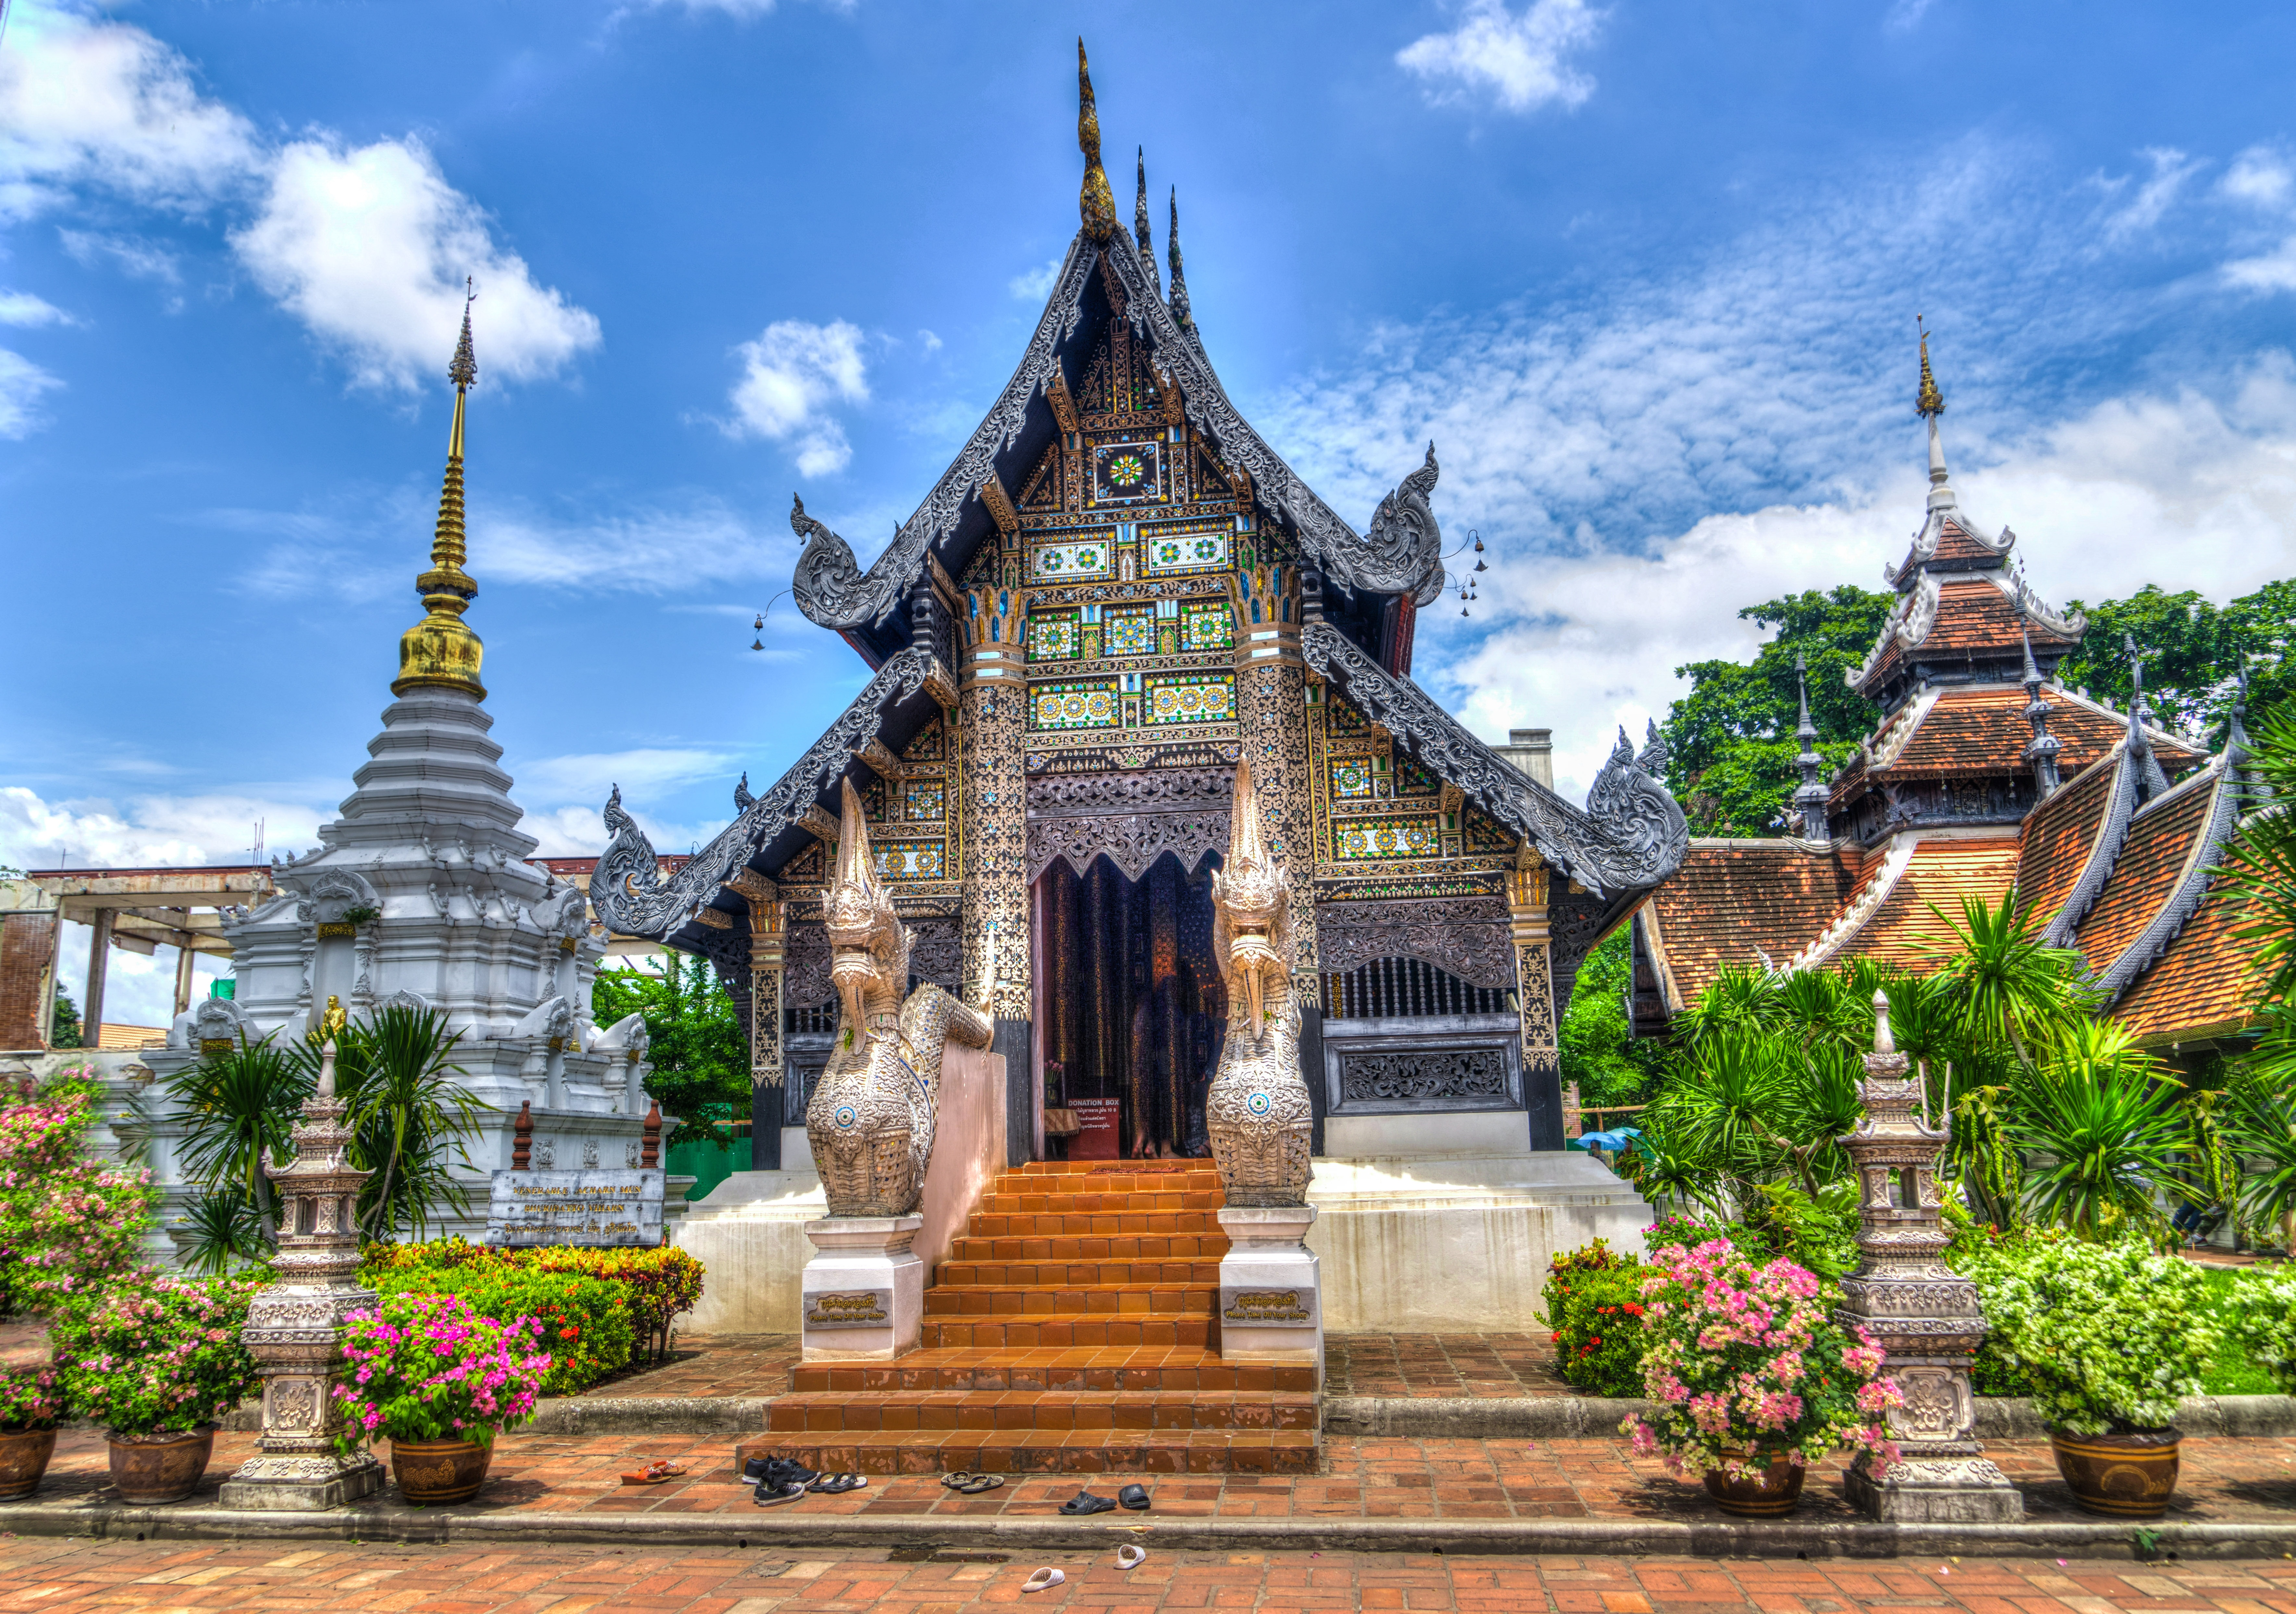 Thailand's Special Tourist Visa Program Now Available Worldwide